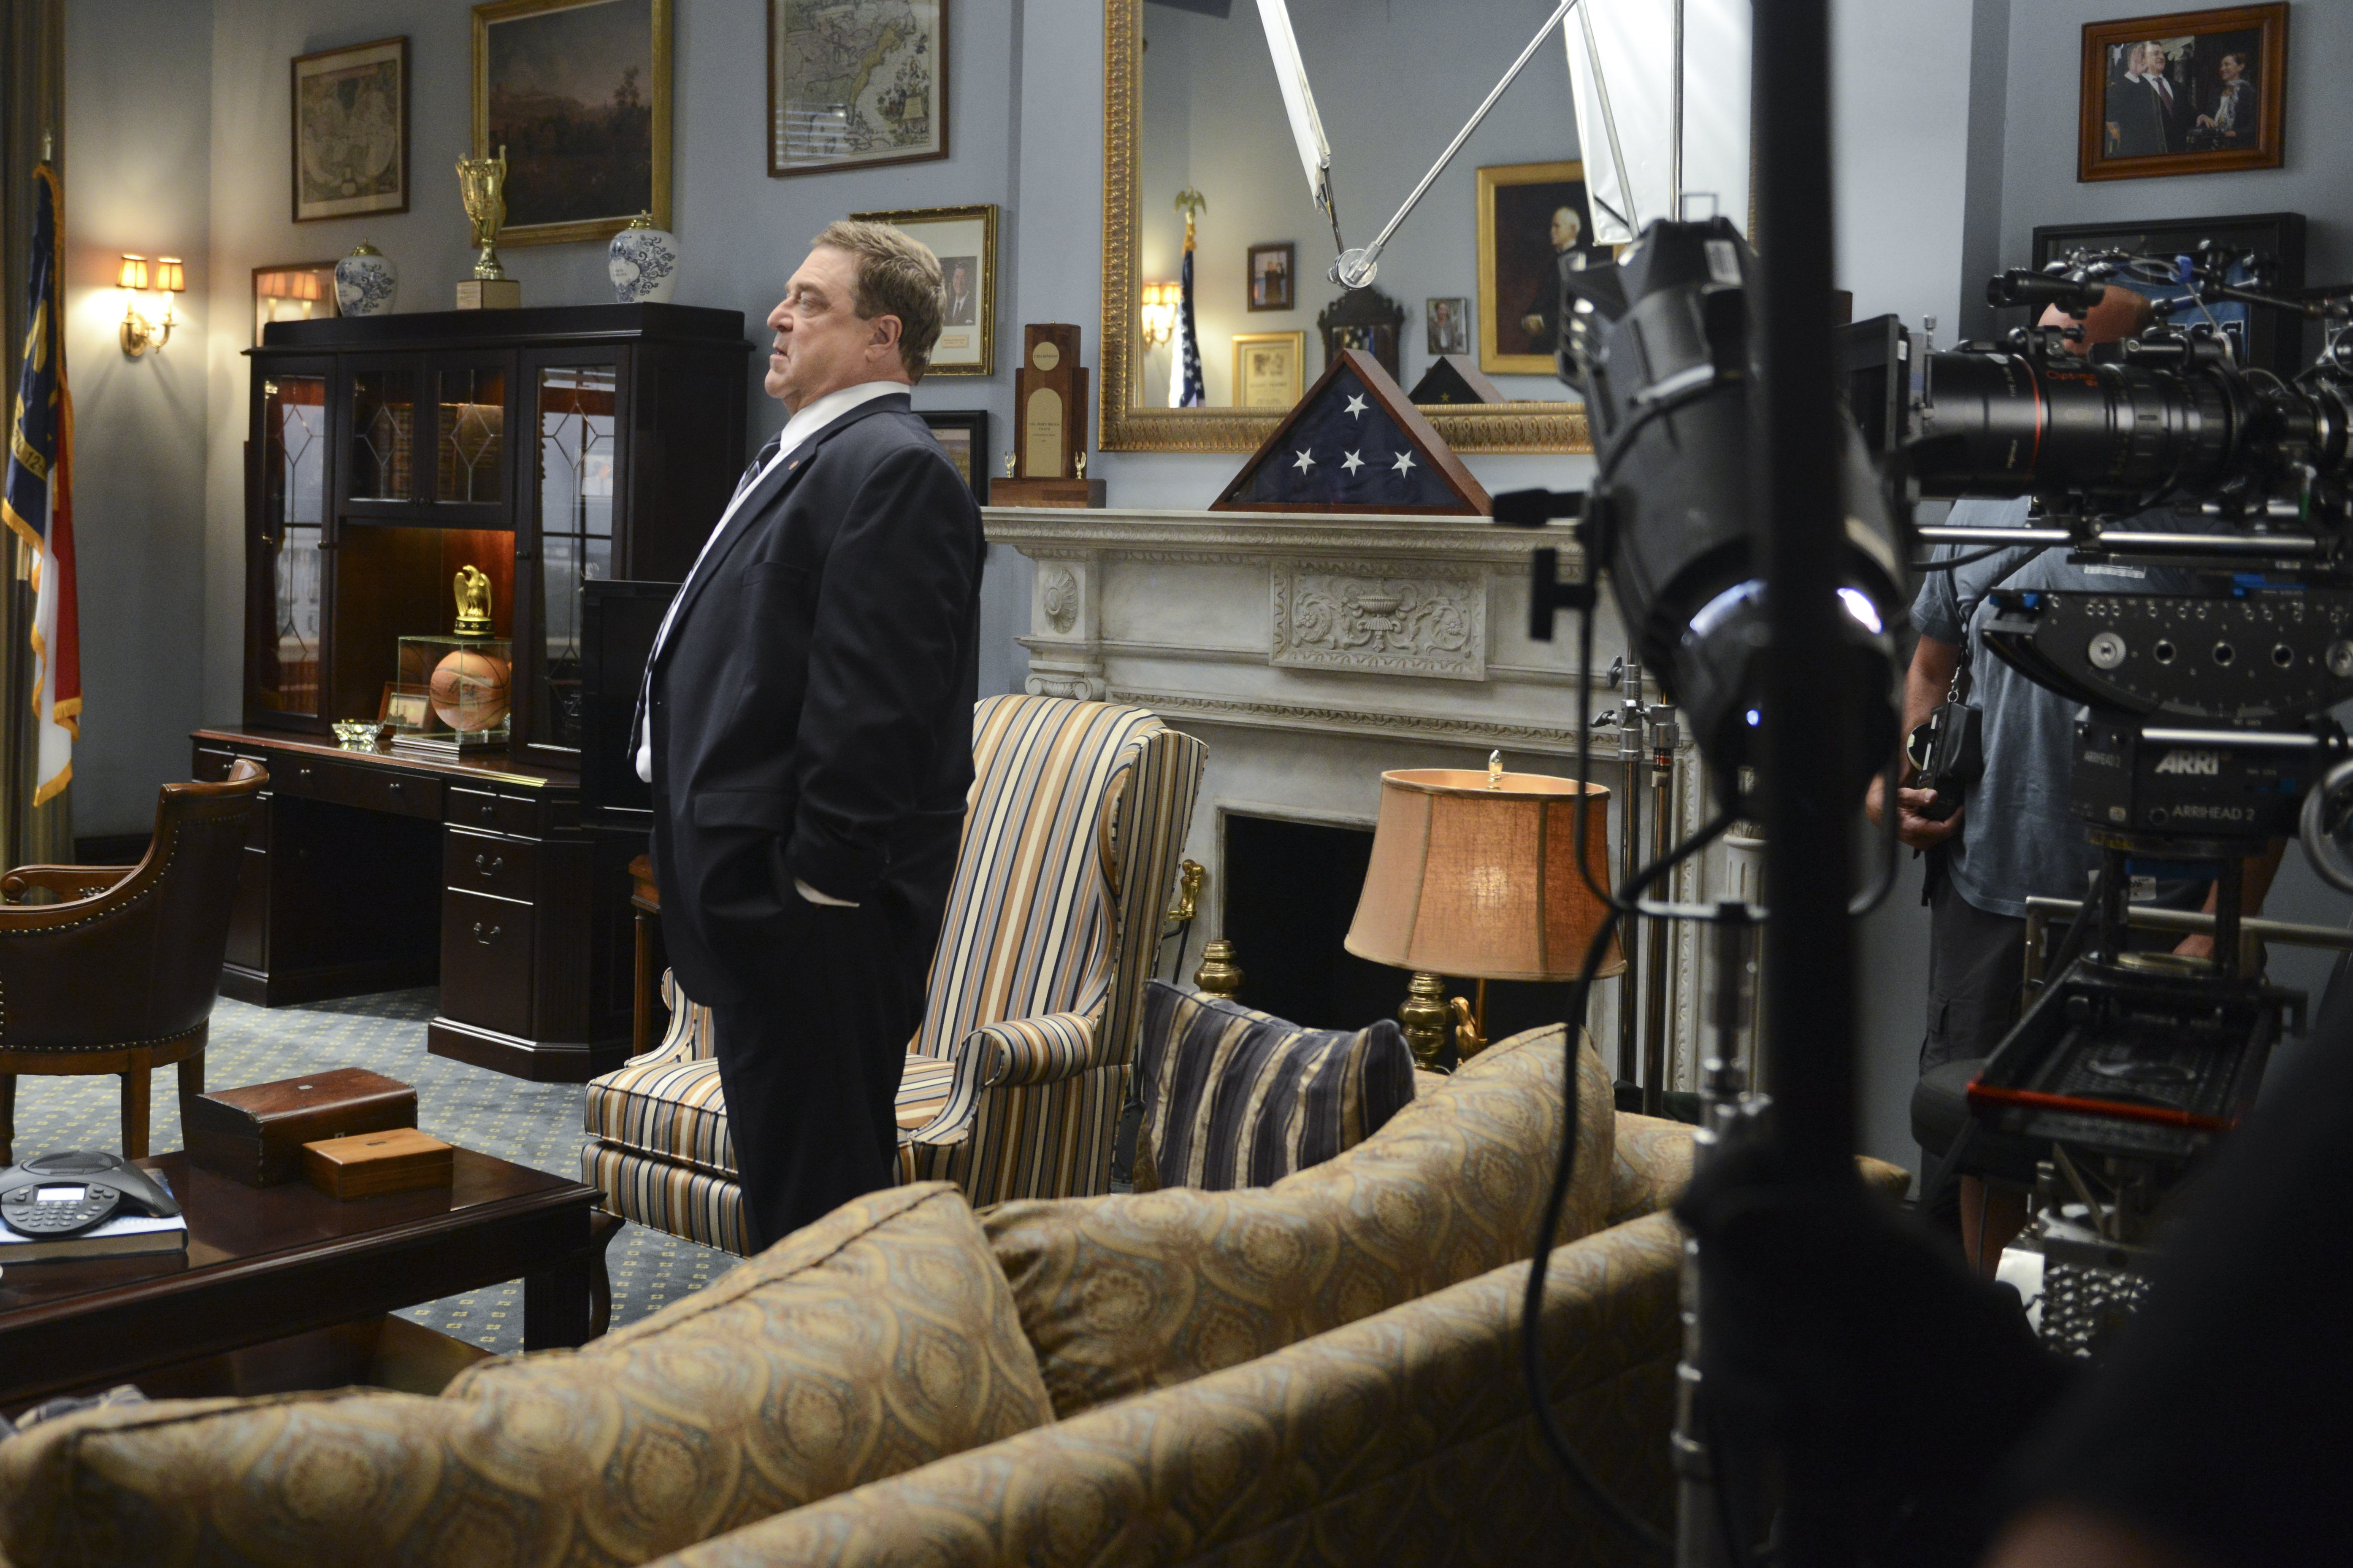 John Goodman on the set of Alpha House